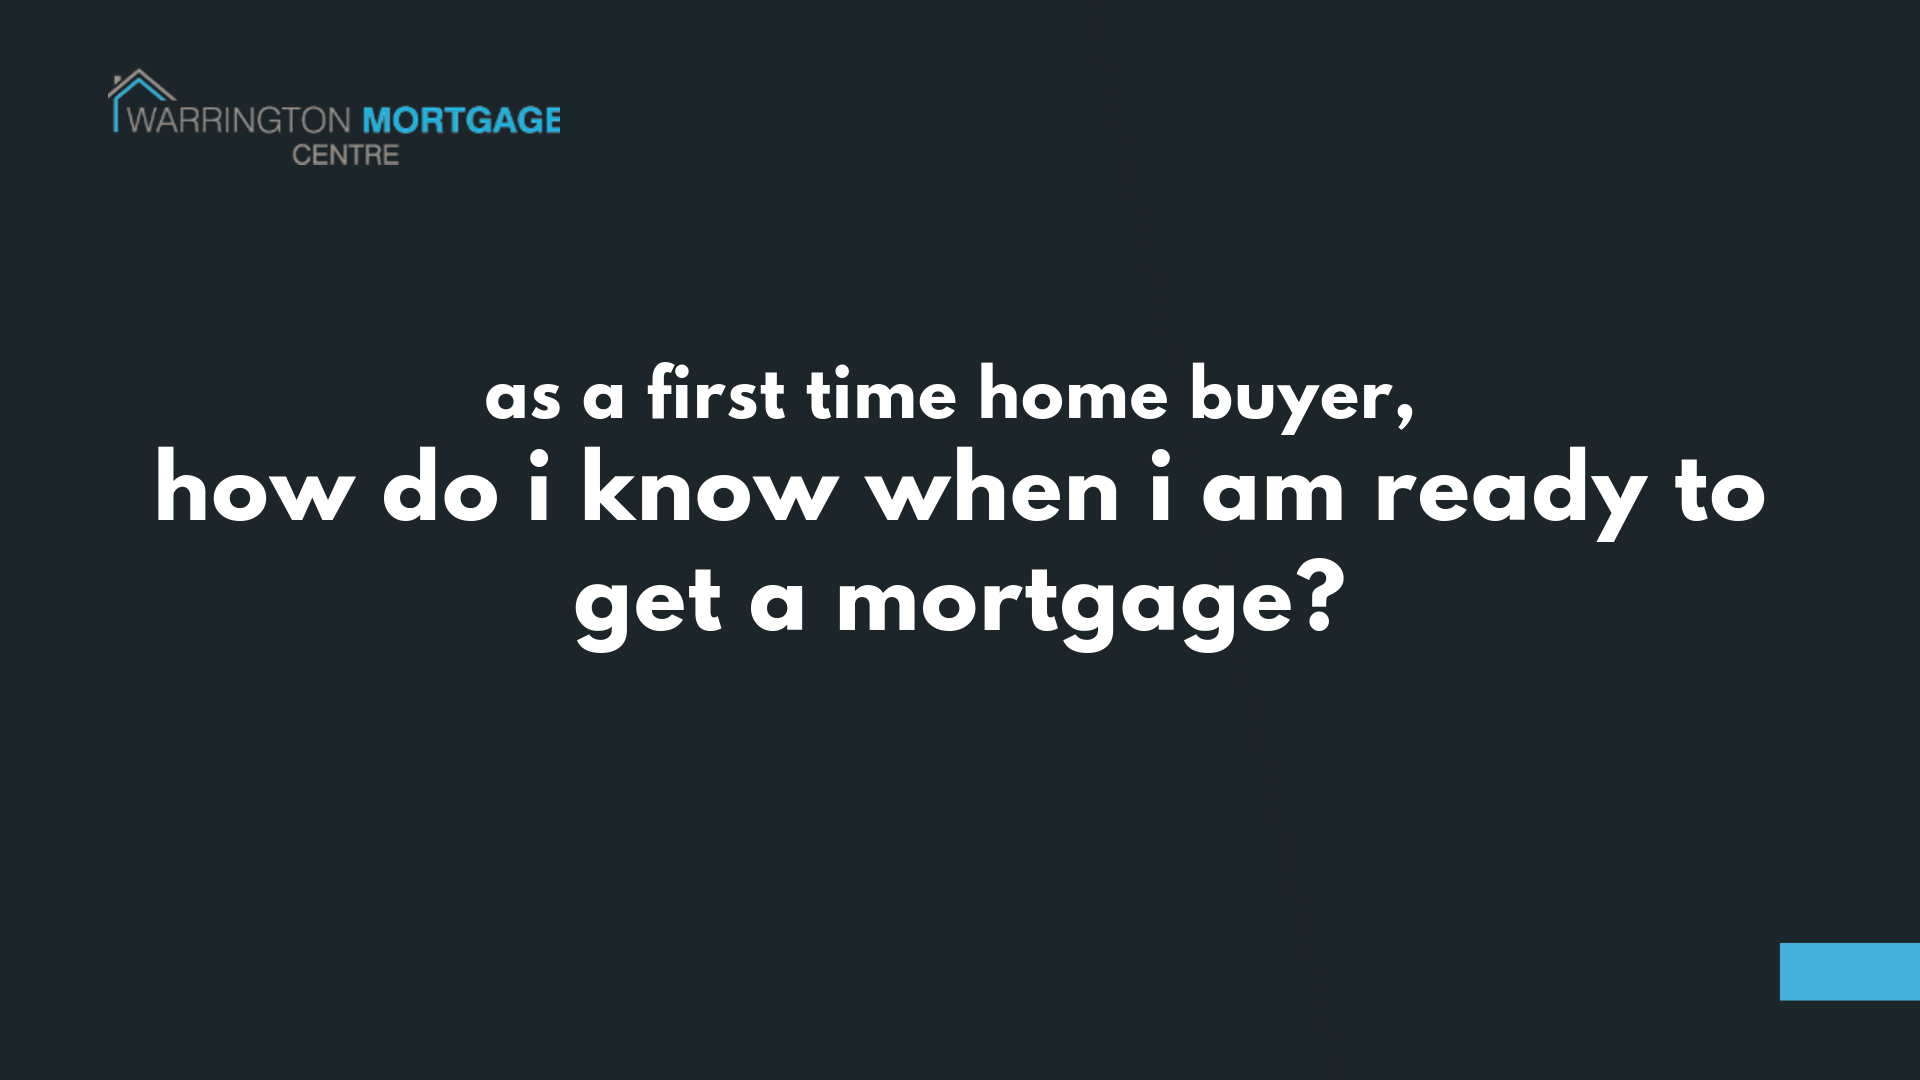 As a first time home owner, when is the right time to buy?